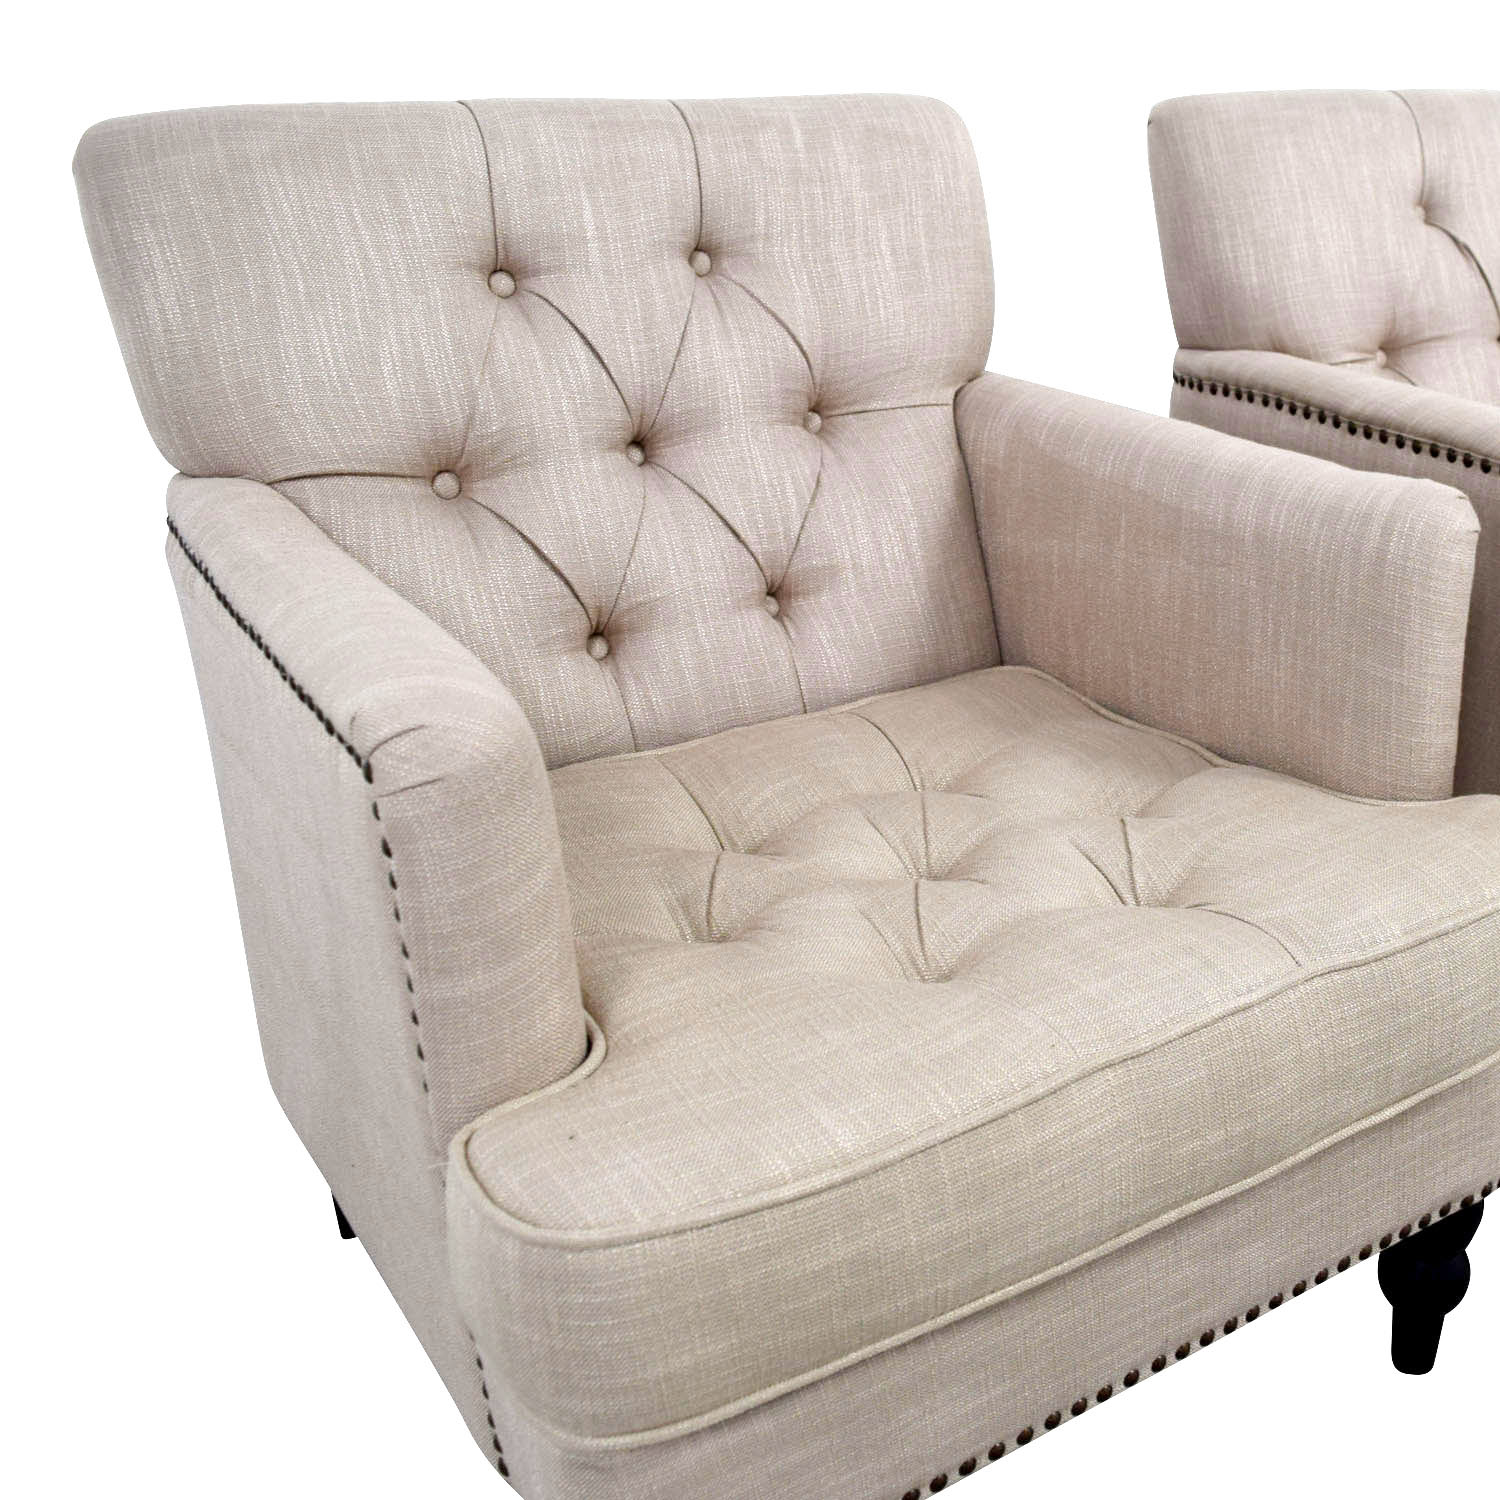 shop Great Deal Furniture Medford Chair Great Deal Furniture Chairs